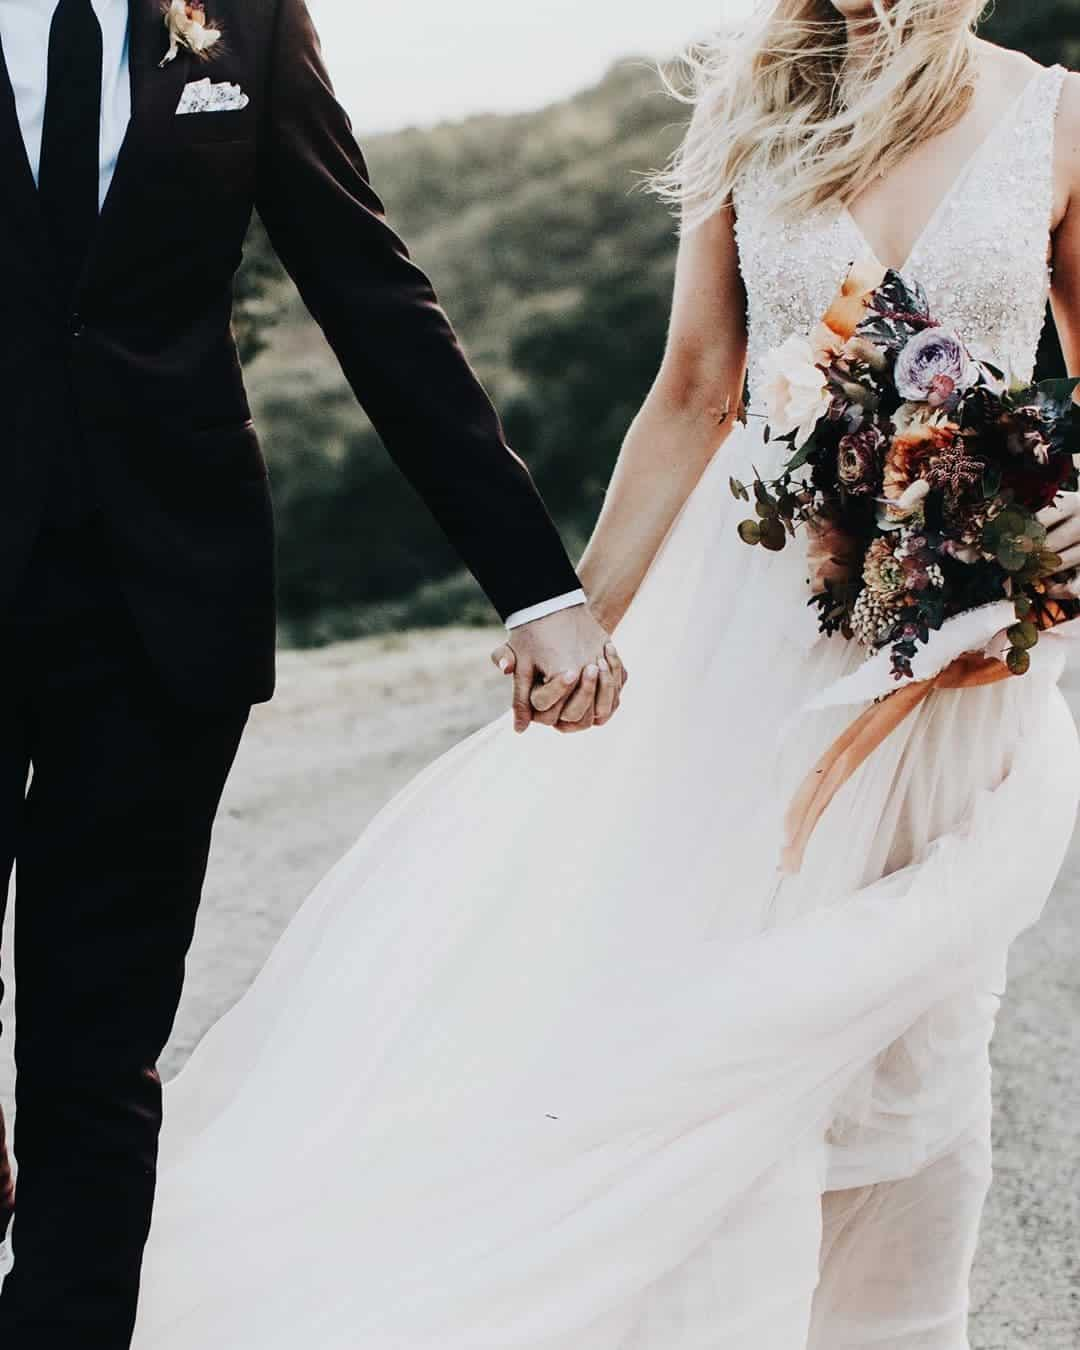 Vintage Inspired Wedding Dresses Glitter Tulle Sequin Backless Bohemian Bridal Gown BHLDN Alexandra Wallace Photography 2